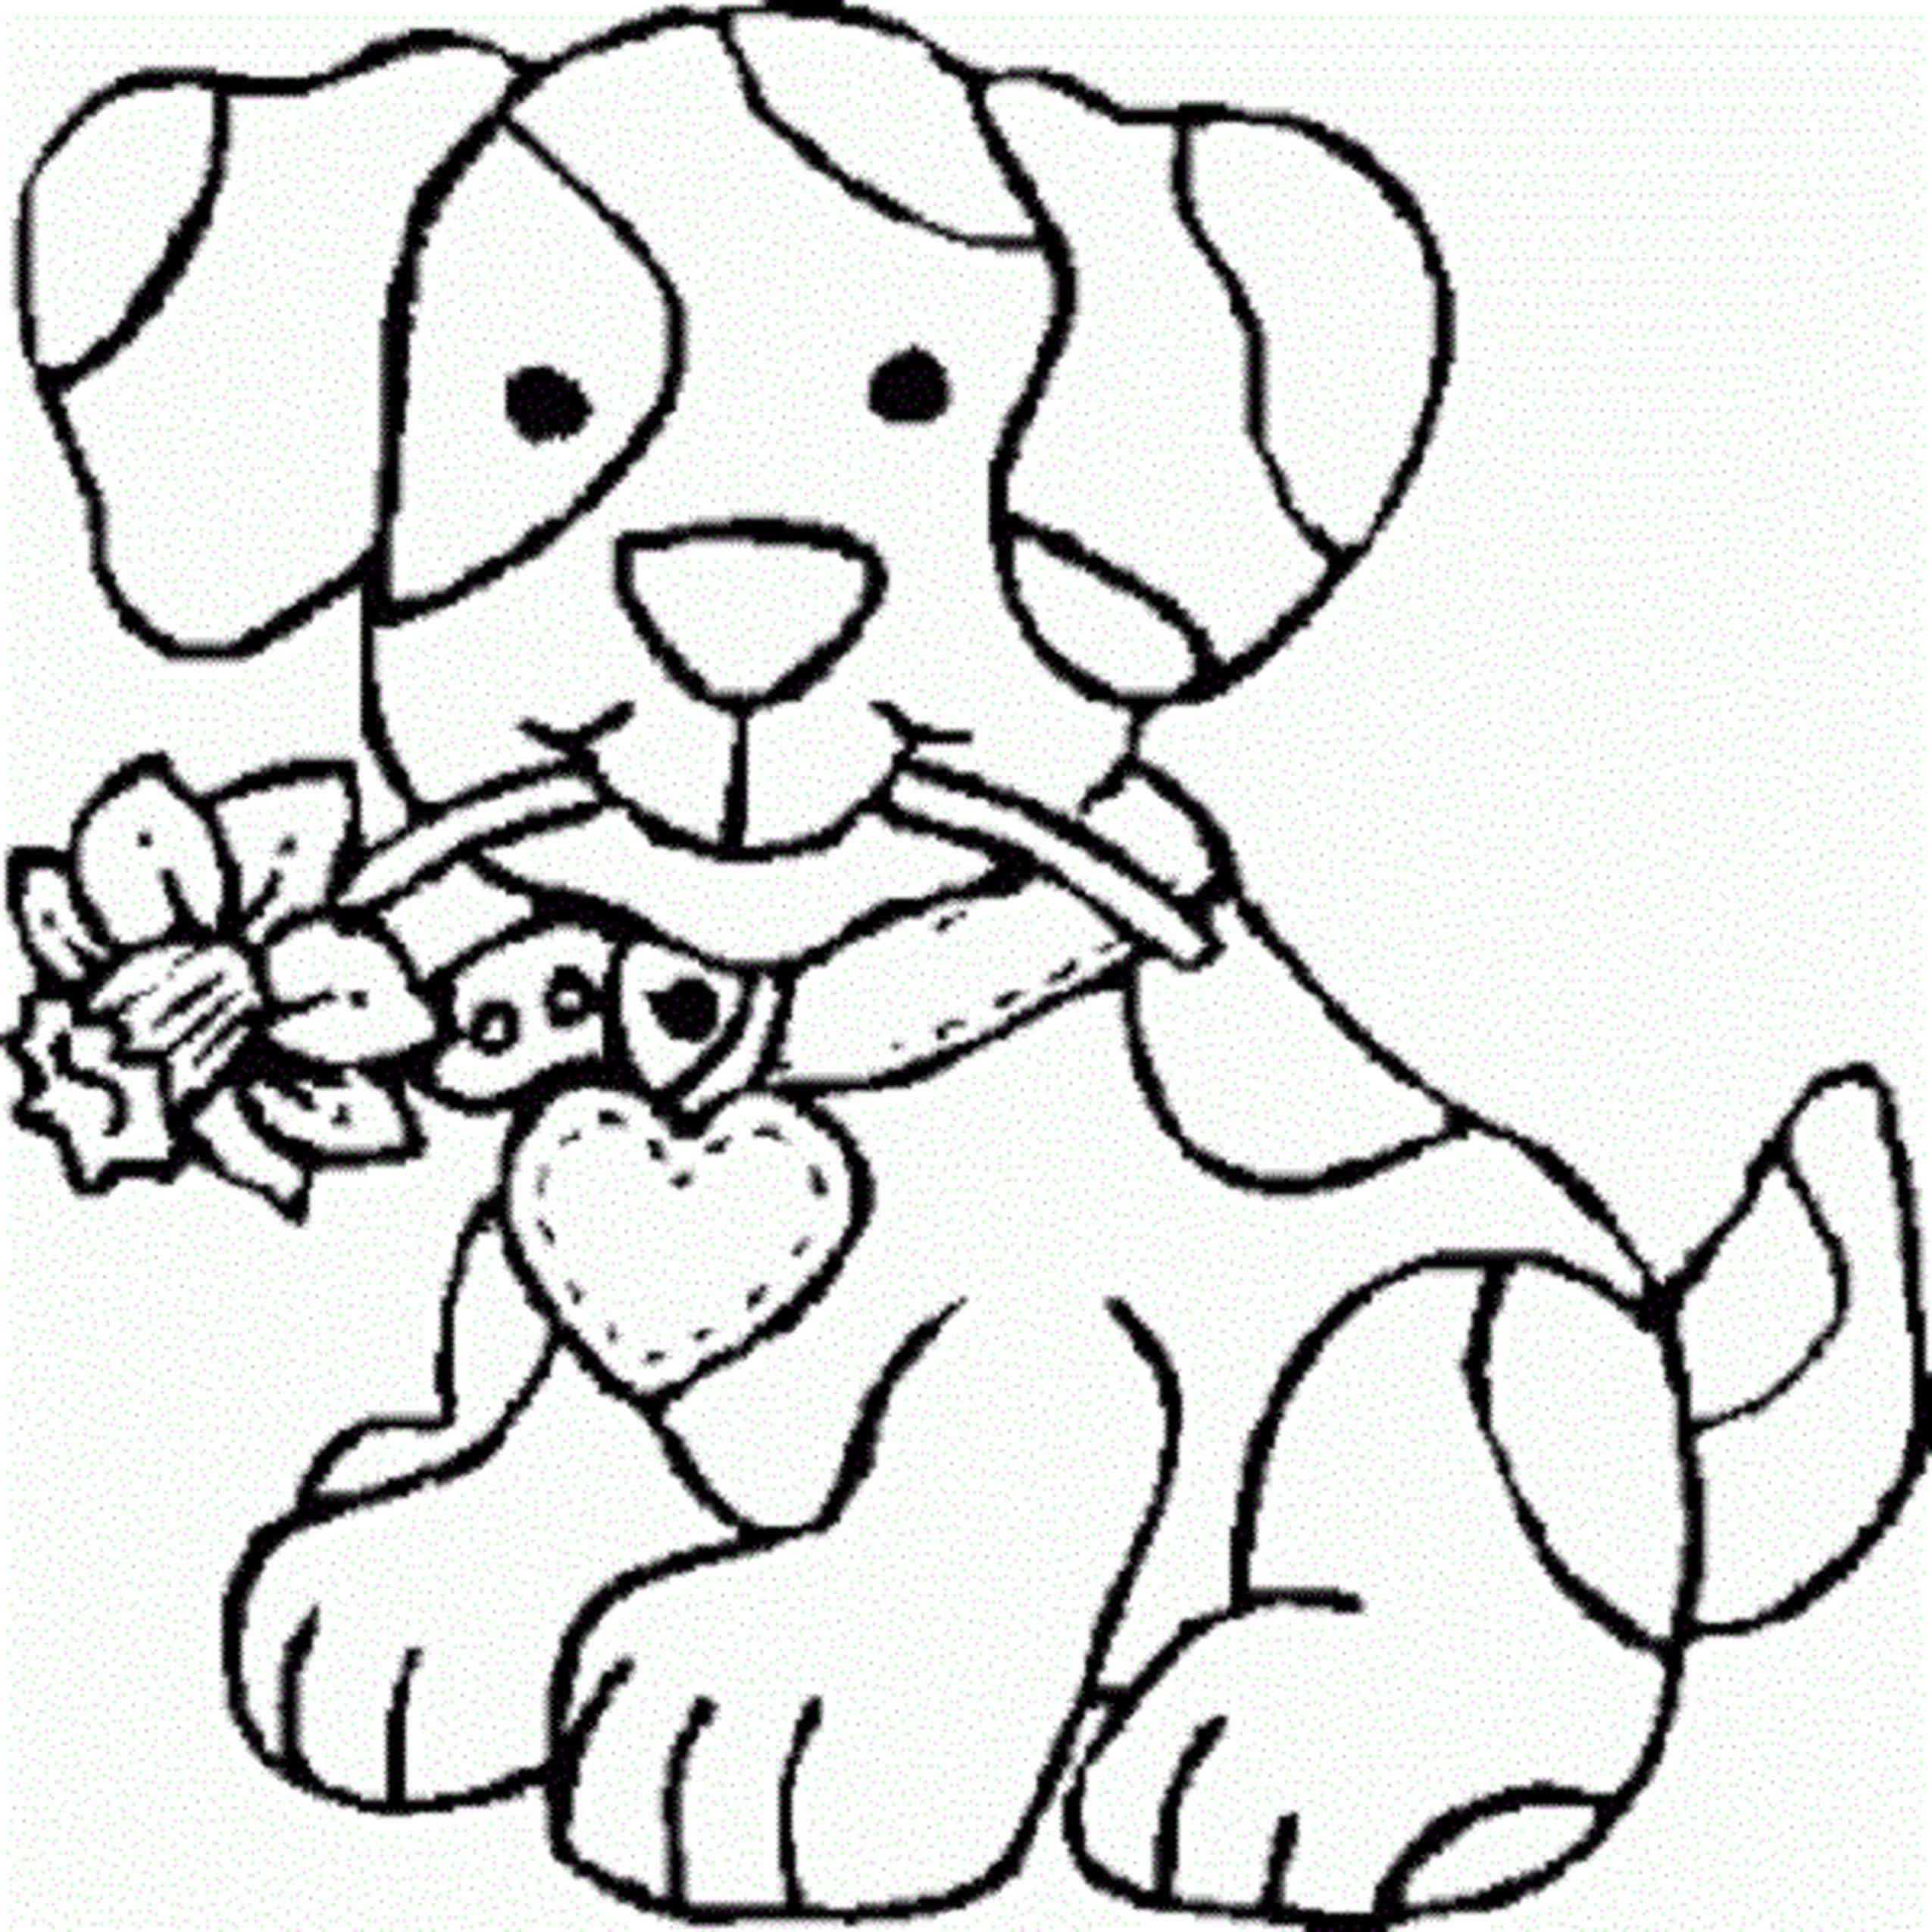 Free coloring pages for girls | Colorings | Pinterest | Girls and Dog